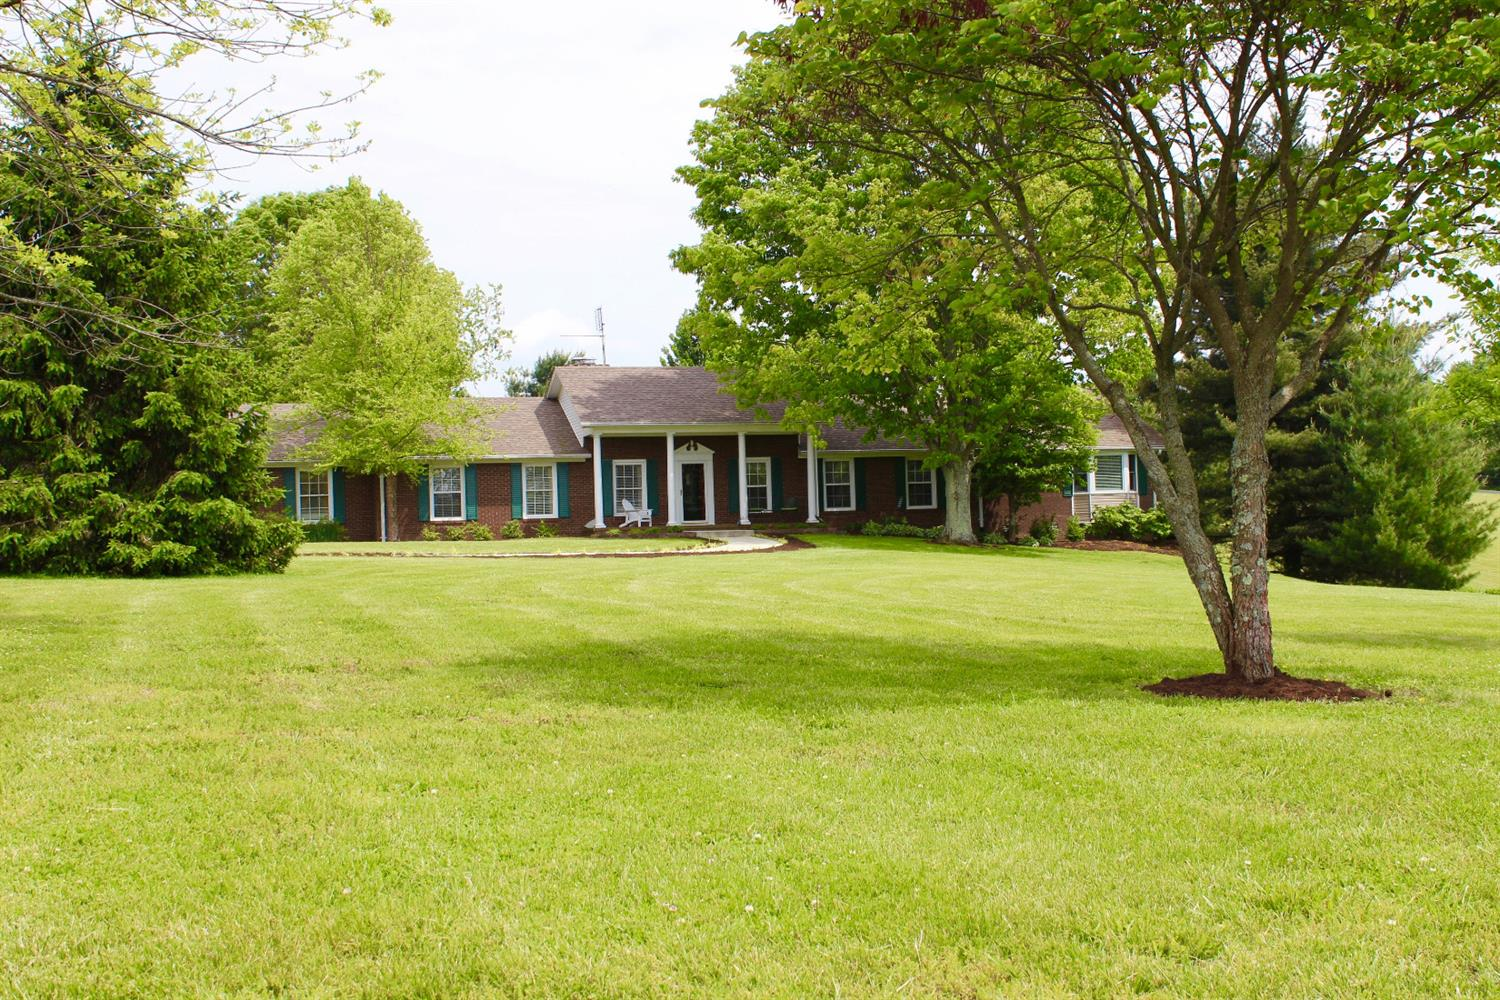 Sprawling%20ranch%20home%20on%205.07%20acre%20lot.%20%20Barn%20on%20back%20of%20property%20previously%20used%20for%20horses.%20Oversized%20two%20car%20garage%20has%20a%20tack%20room%20in%20the%20back%20with%20separate%20doors.%20%20Beautiful%20professionally%20landscaped%20lot%20and%20entry%20to%20the%20property.%20%20Master%20Bath%20has%20a%20steam%20shower%20and%20heated%20tile%20floors.%20%20Large%20open%20kitchen%20has%20custom%20pull%20outs%20in%20cabinets.%20%20This%20home%20has%20too%20many%20upgrades%20to%20mention!%20%20See%20it%20soon,%20it%20won't%20last%20long.